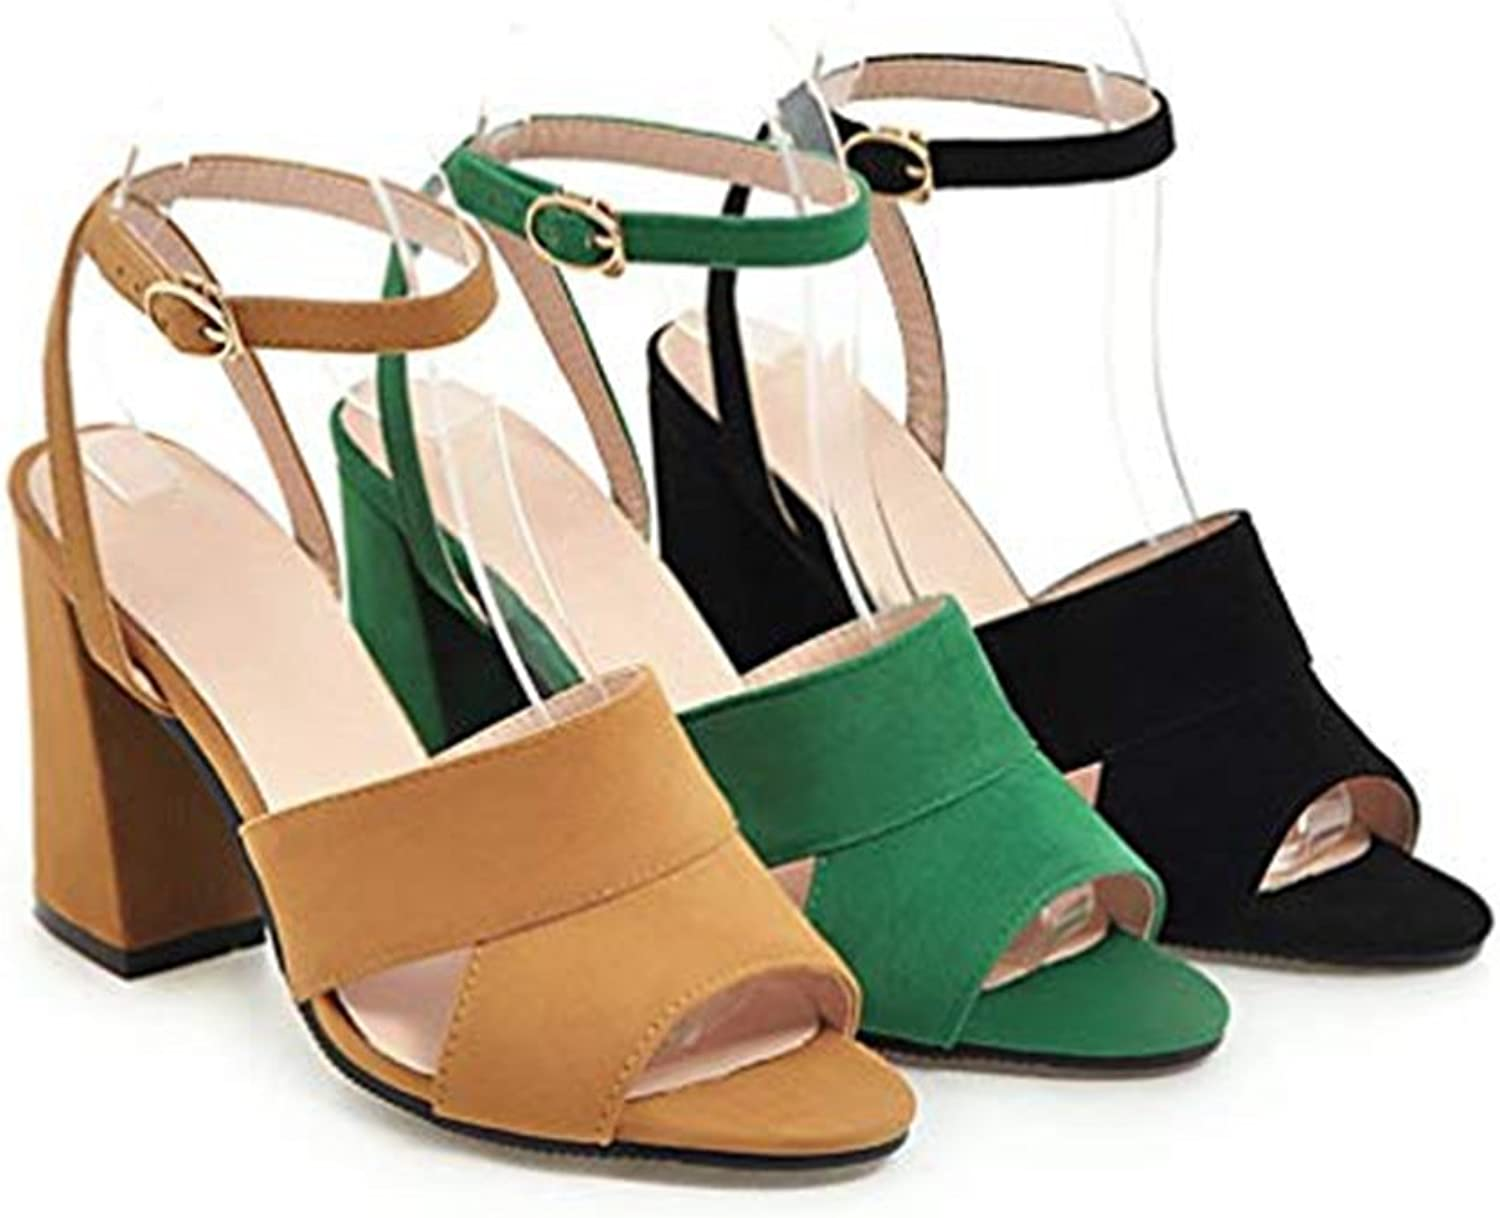 T-JULY Suede Ankle Strap Chunky Heeled Peep Toe Slide Sandals for Women Evening Wedding Party Dress Roman Pump